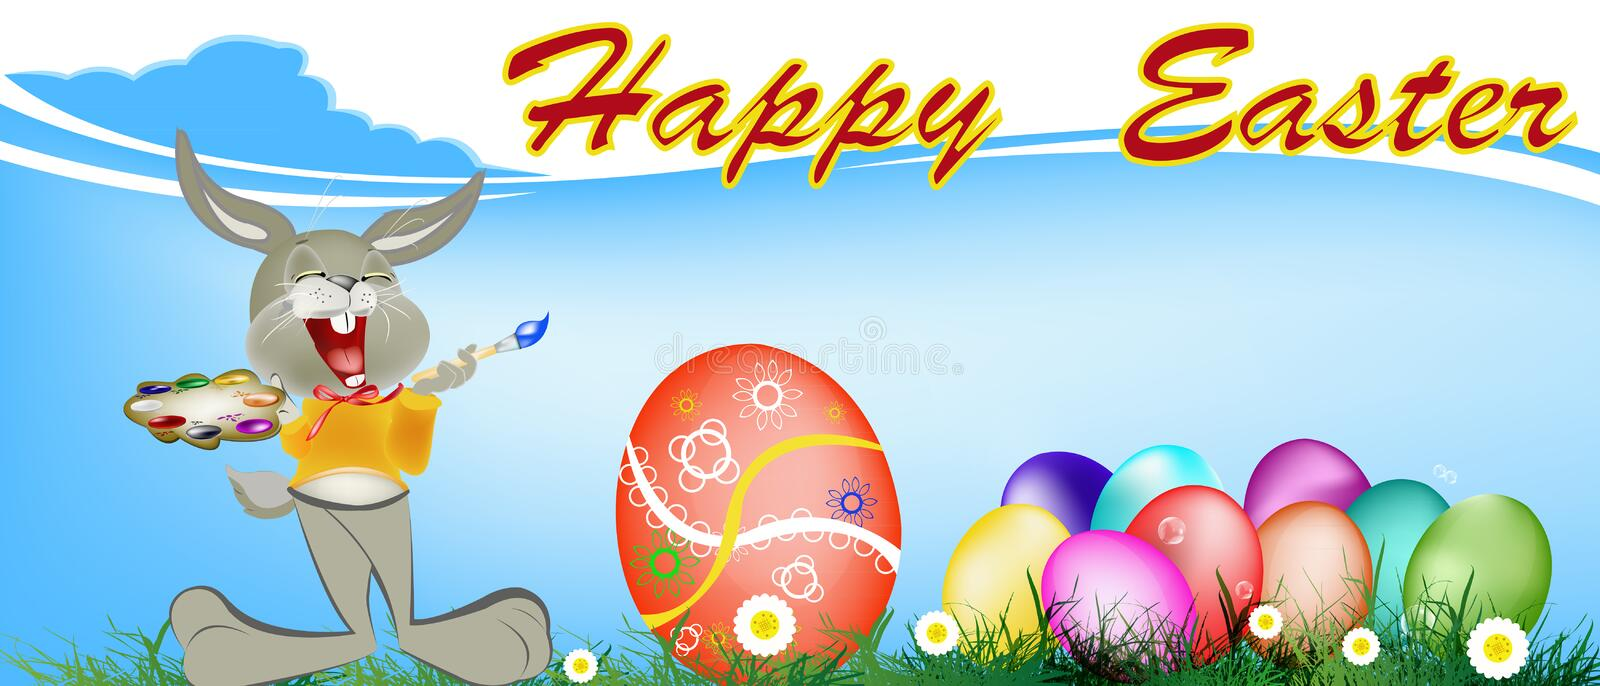 Download Holiday easter.Happy Hair stock illustration. Illustration of abstract - 39509475